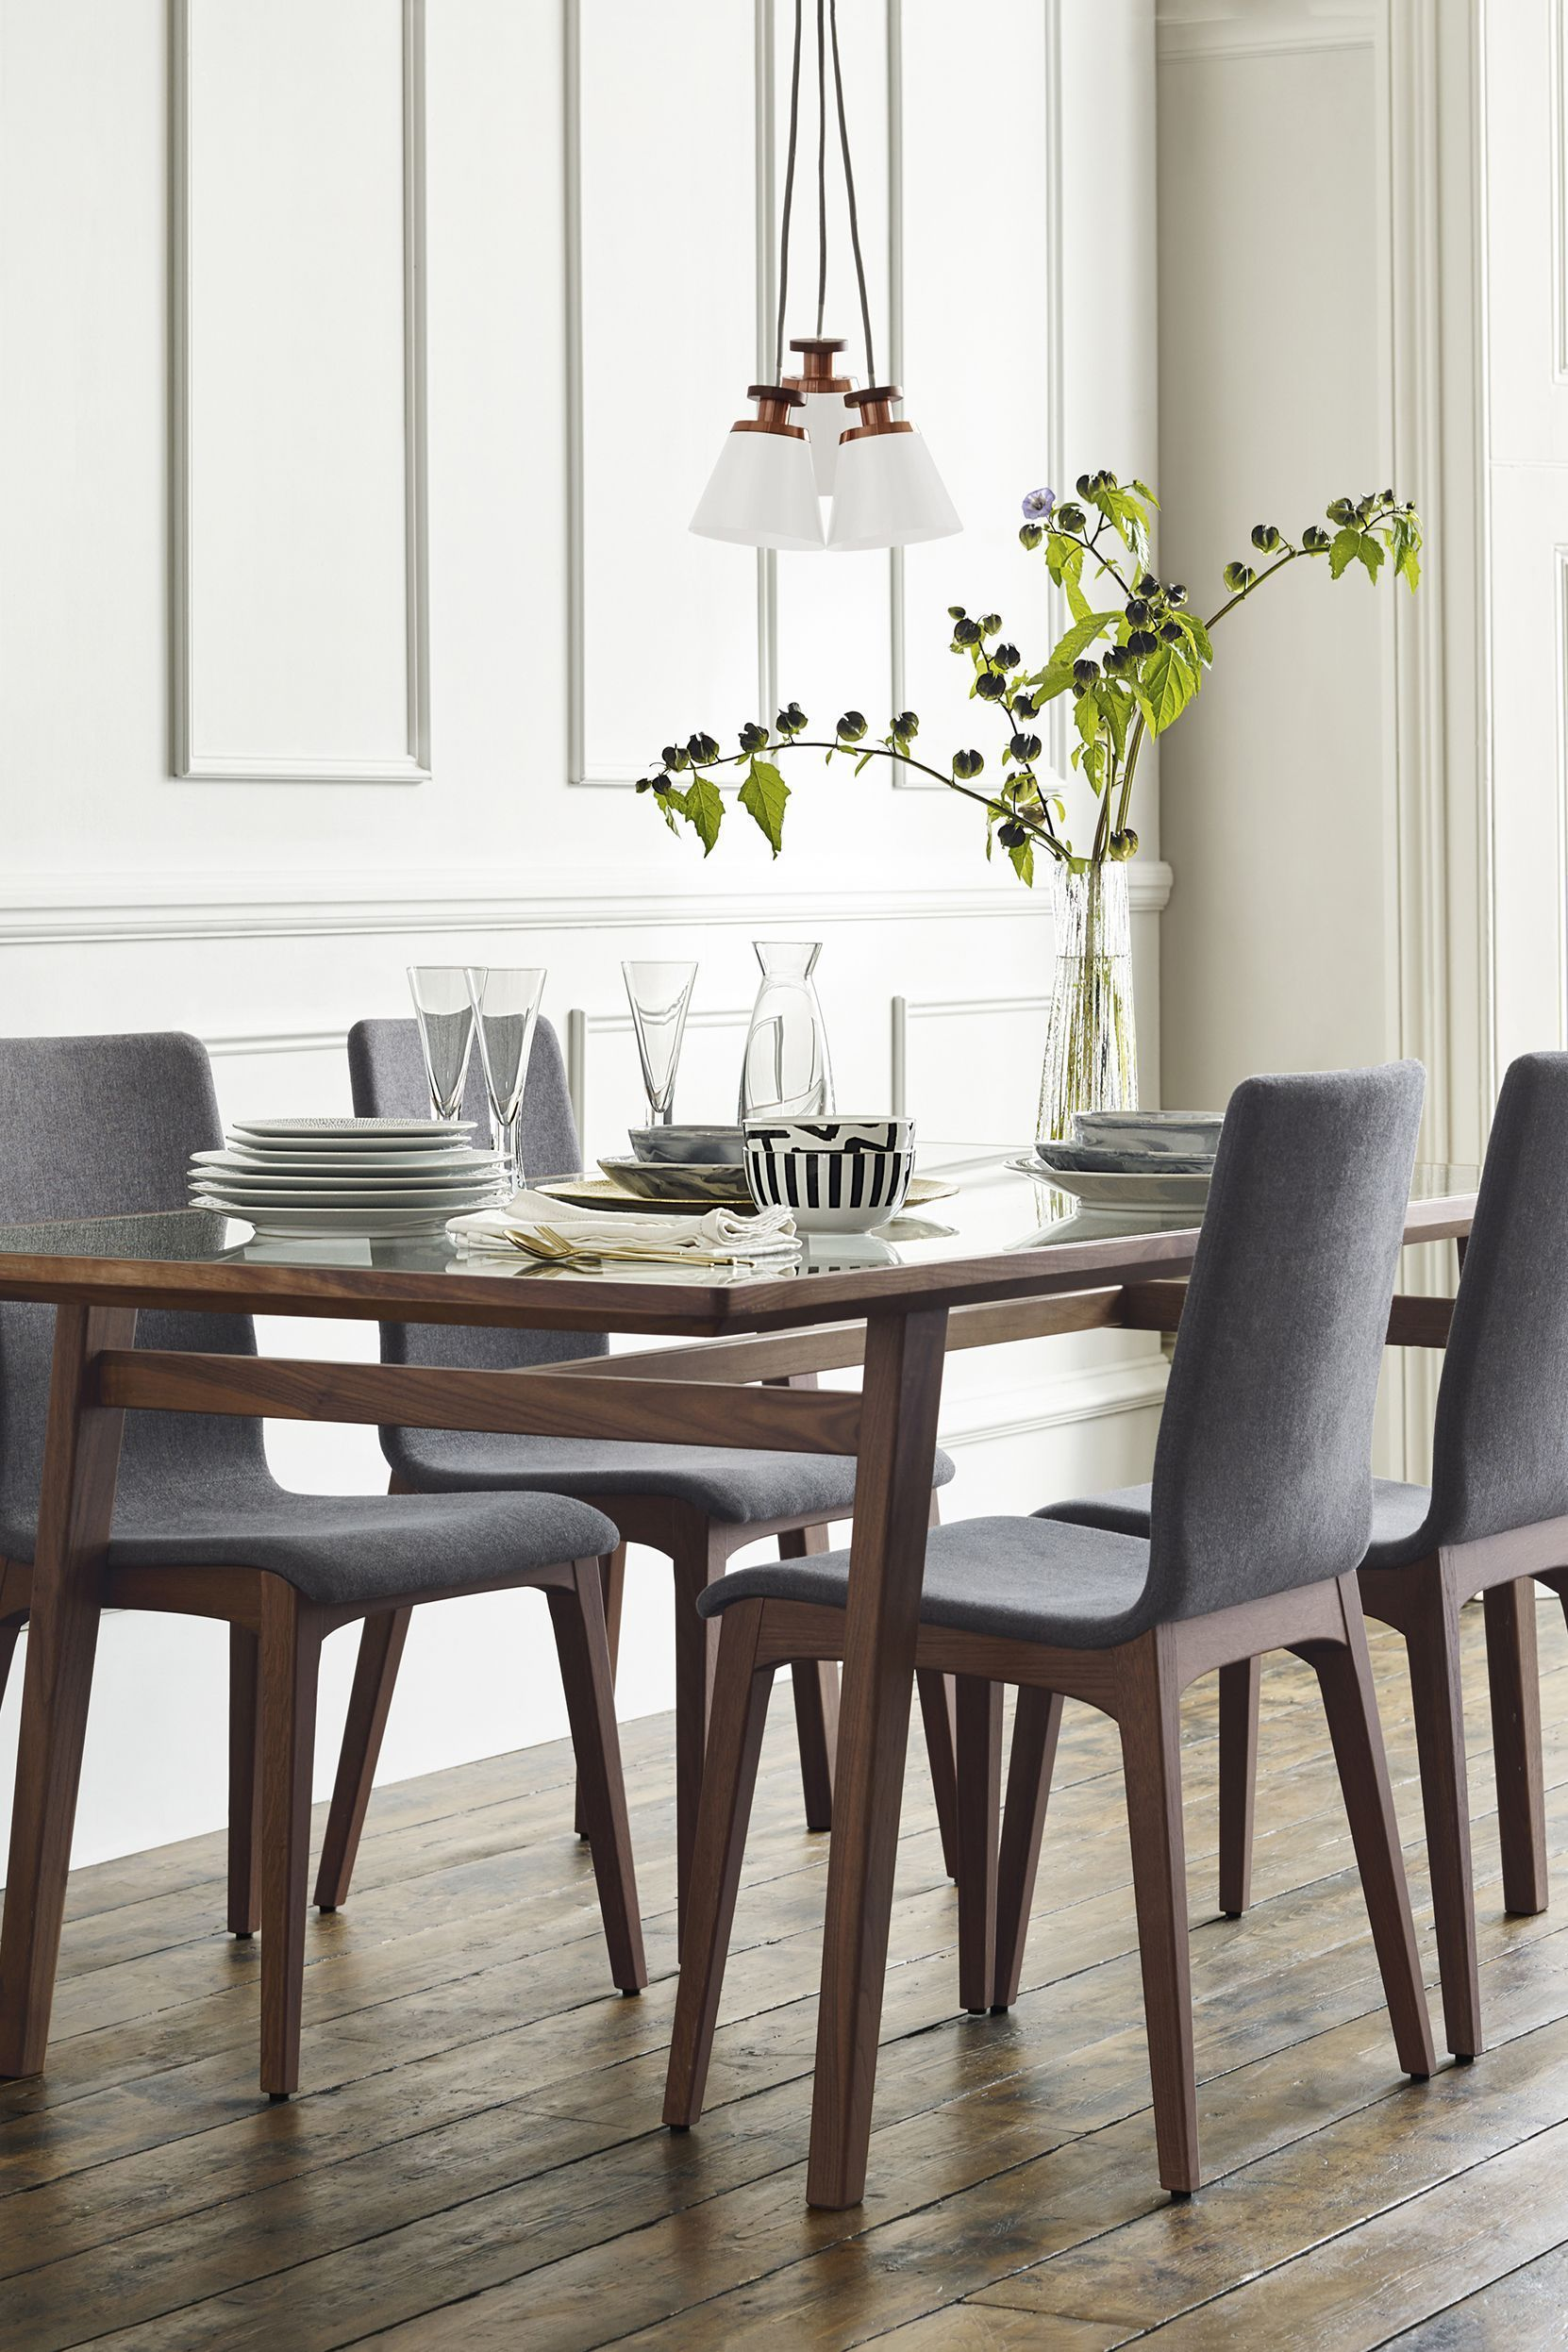 refresh your decor with contemporary dining room table and chairs in rh pinterest com dining room suites for sale dining room suite specials